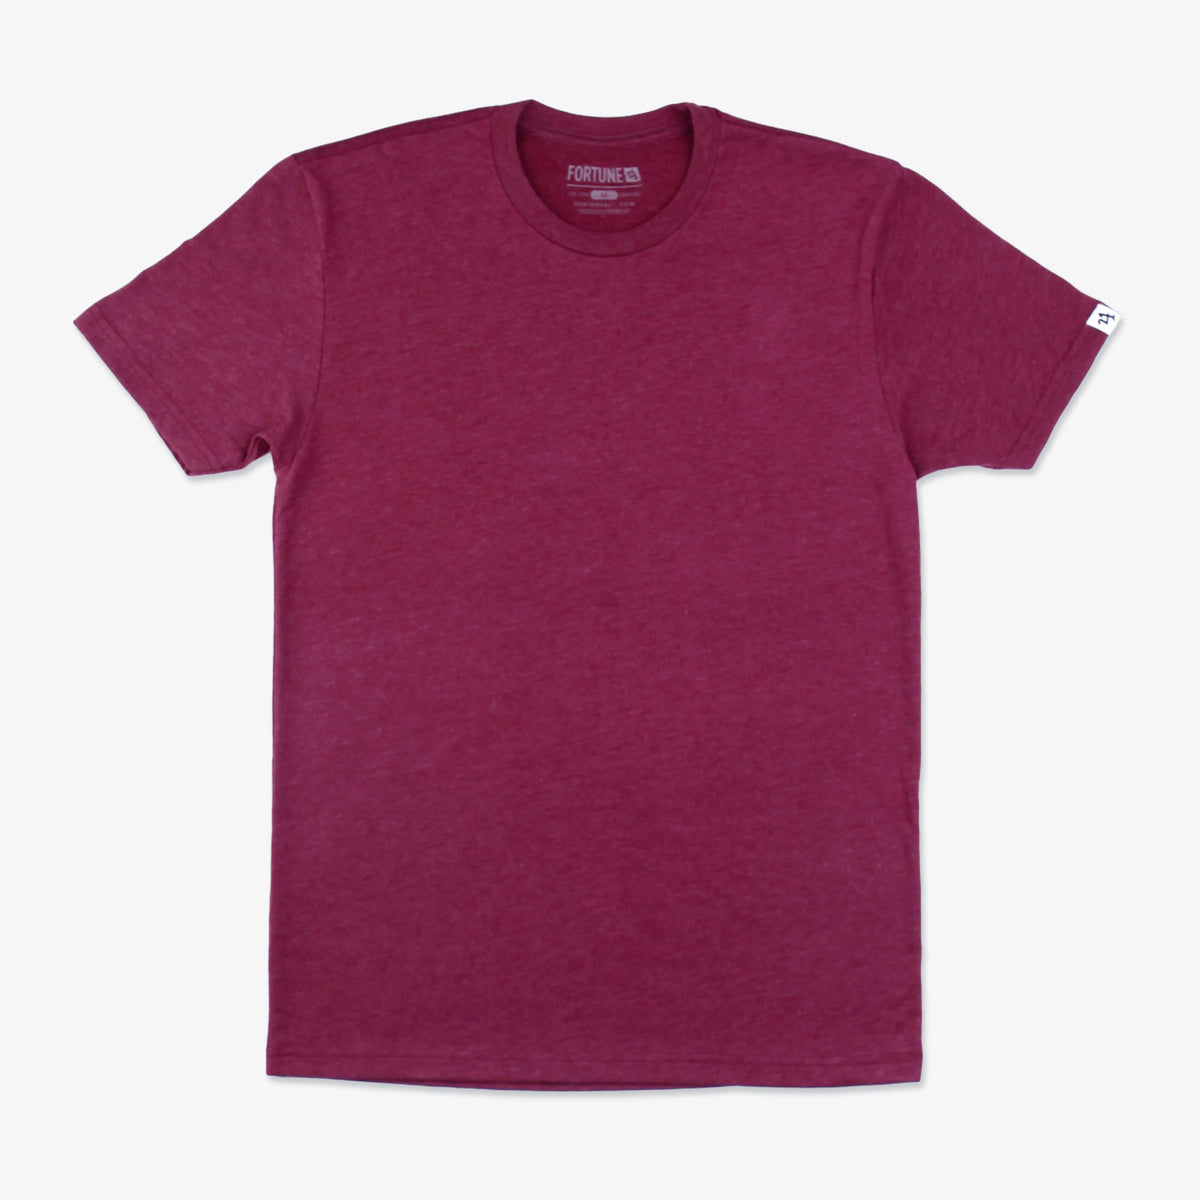 No Bad Days Sueded Crew Tee - Sangria